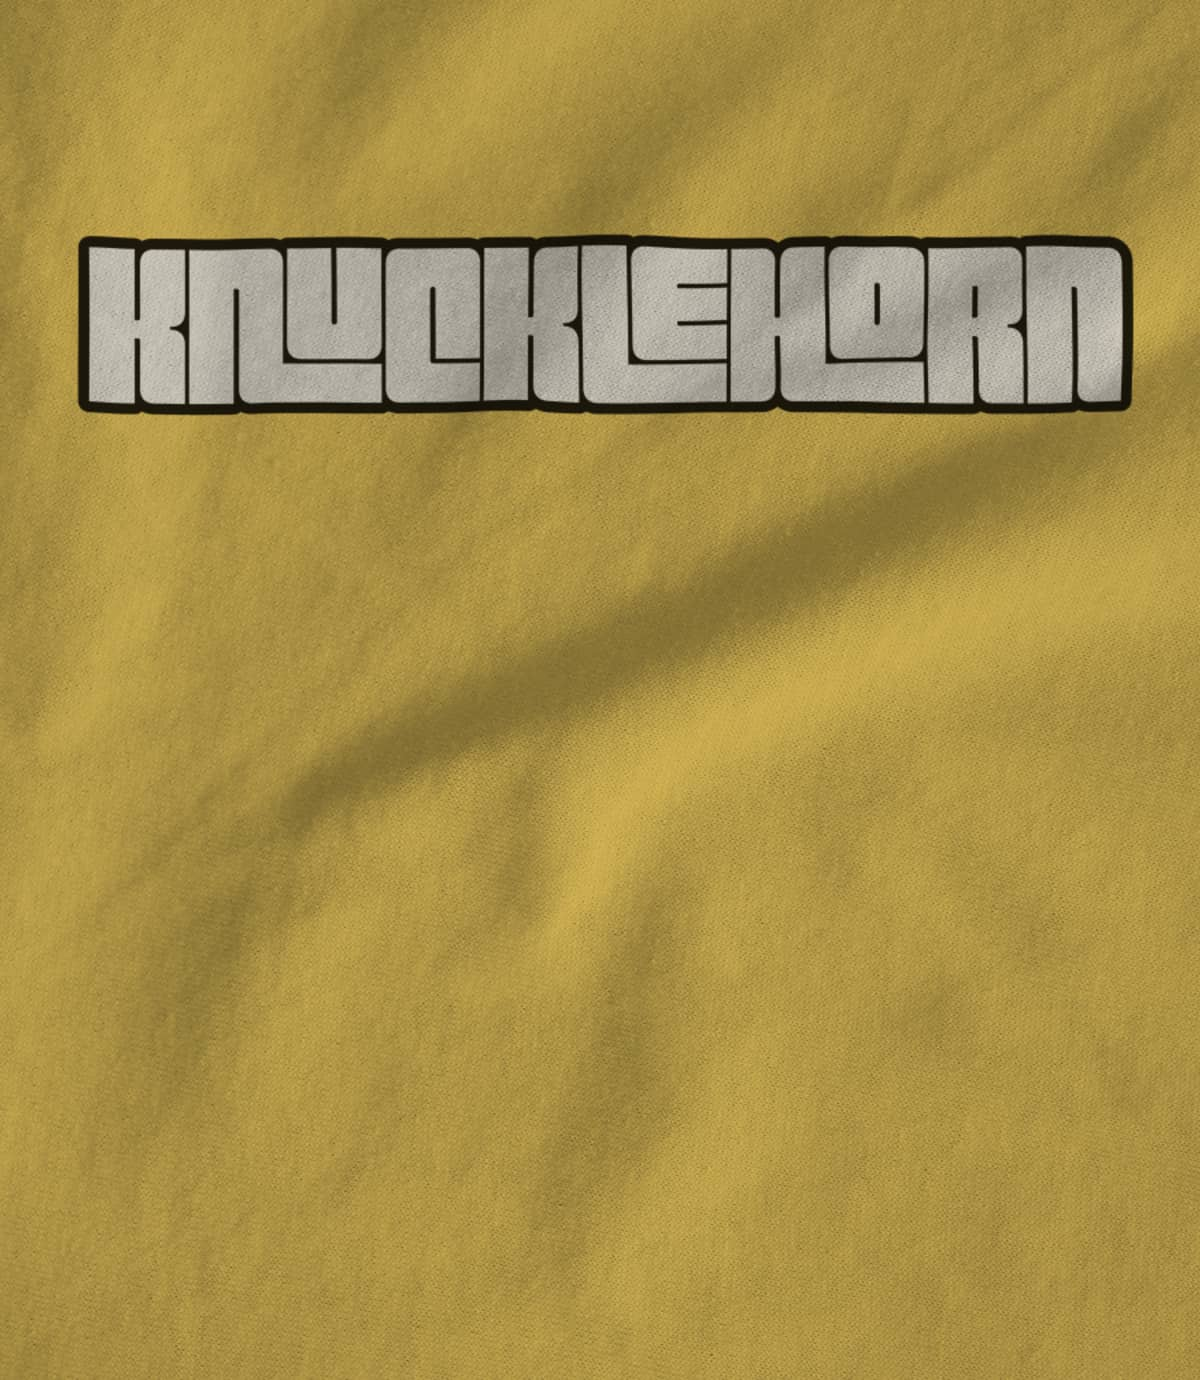 Knucklehorn knucklehorn basic   yellow 1614190106